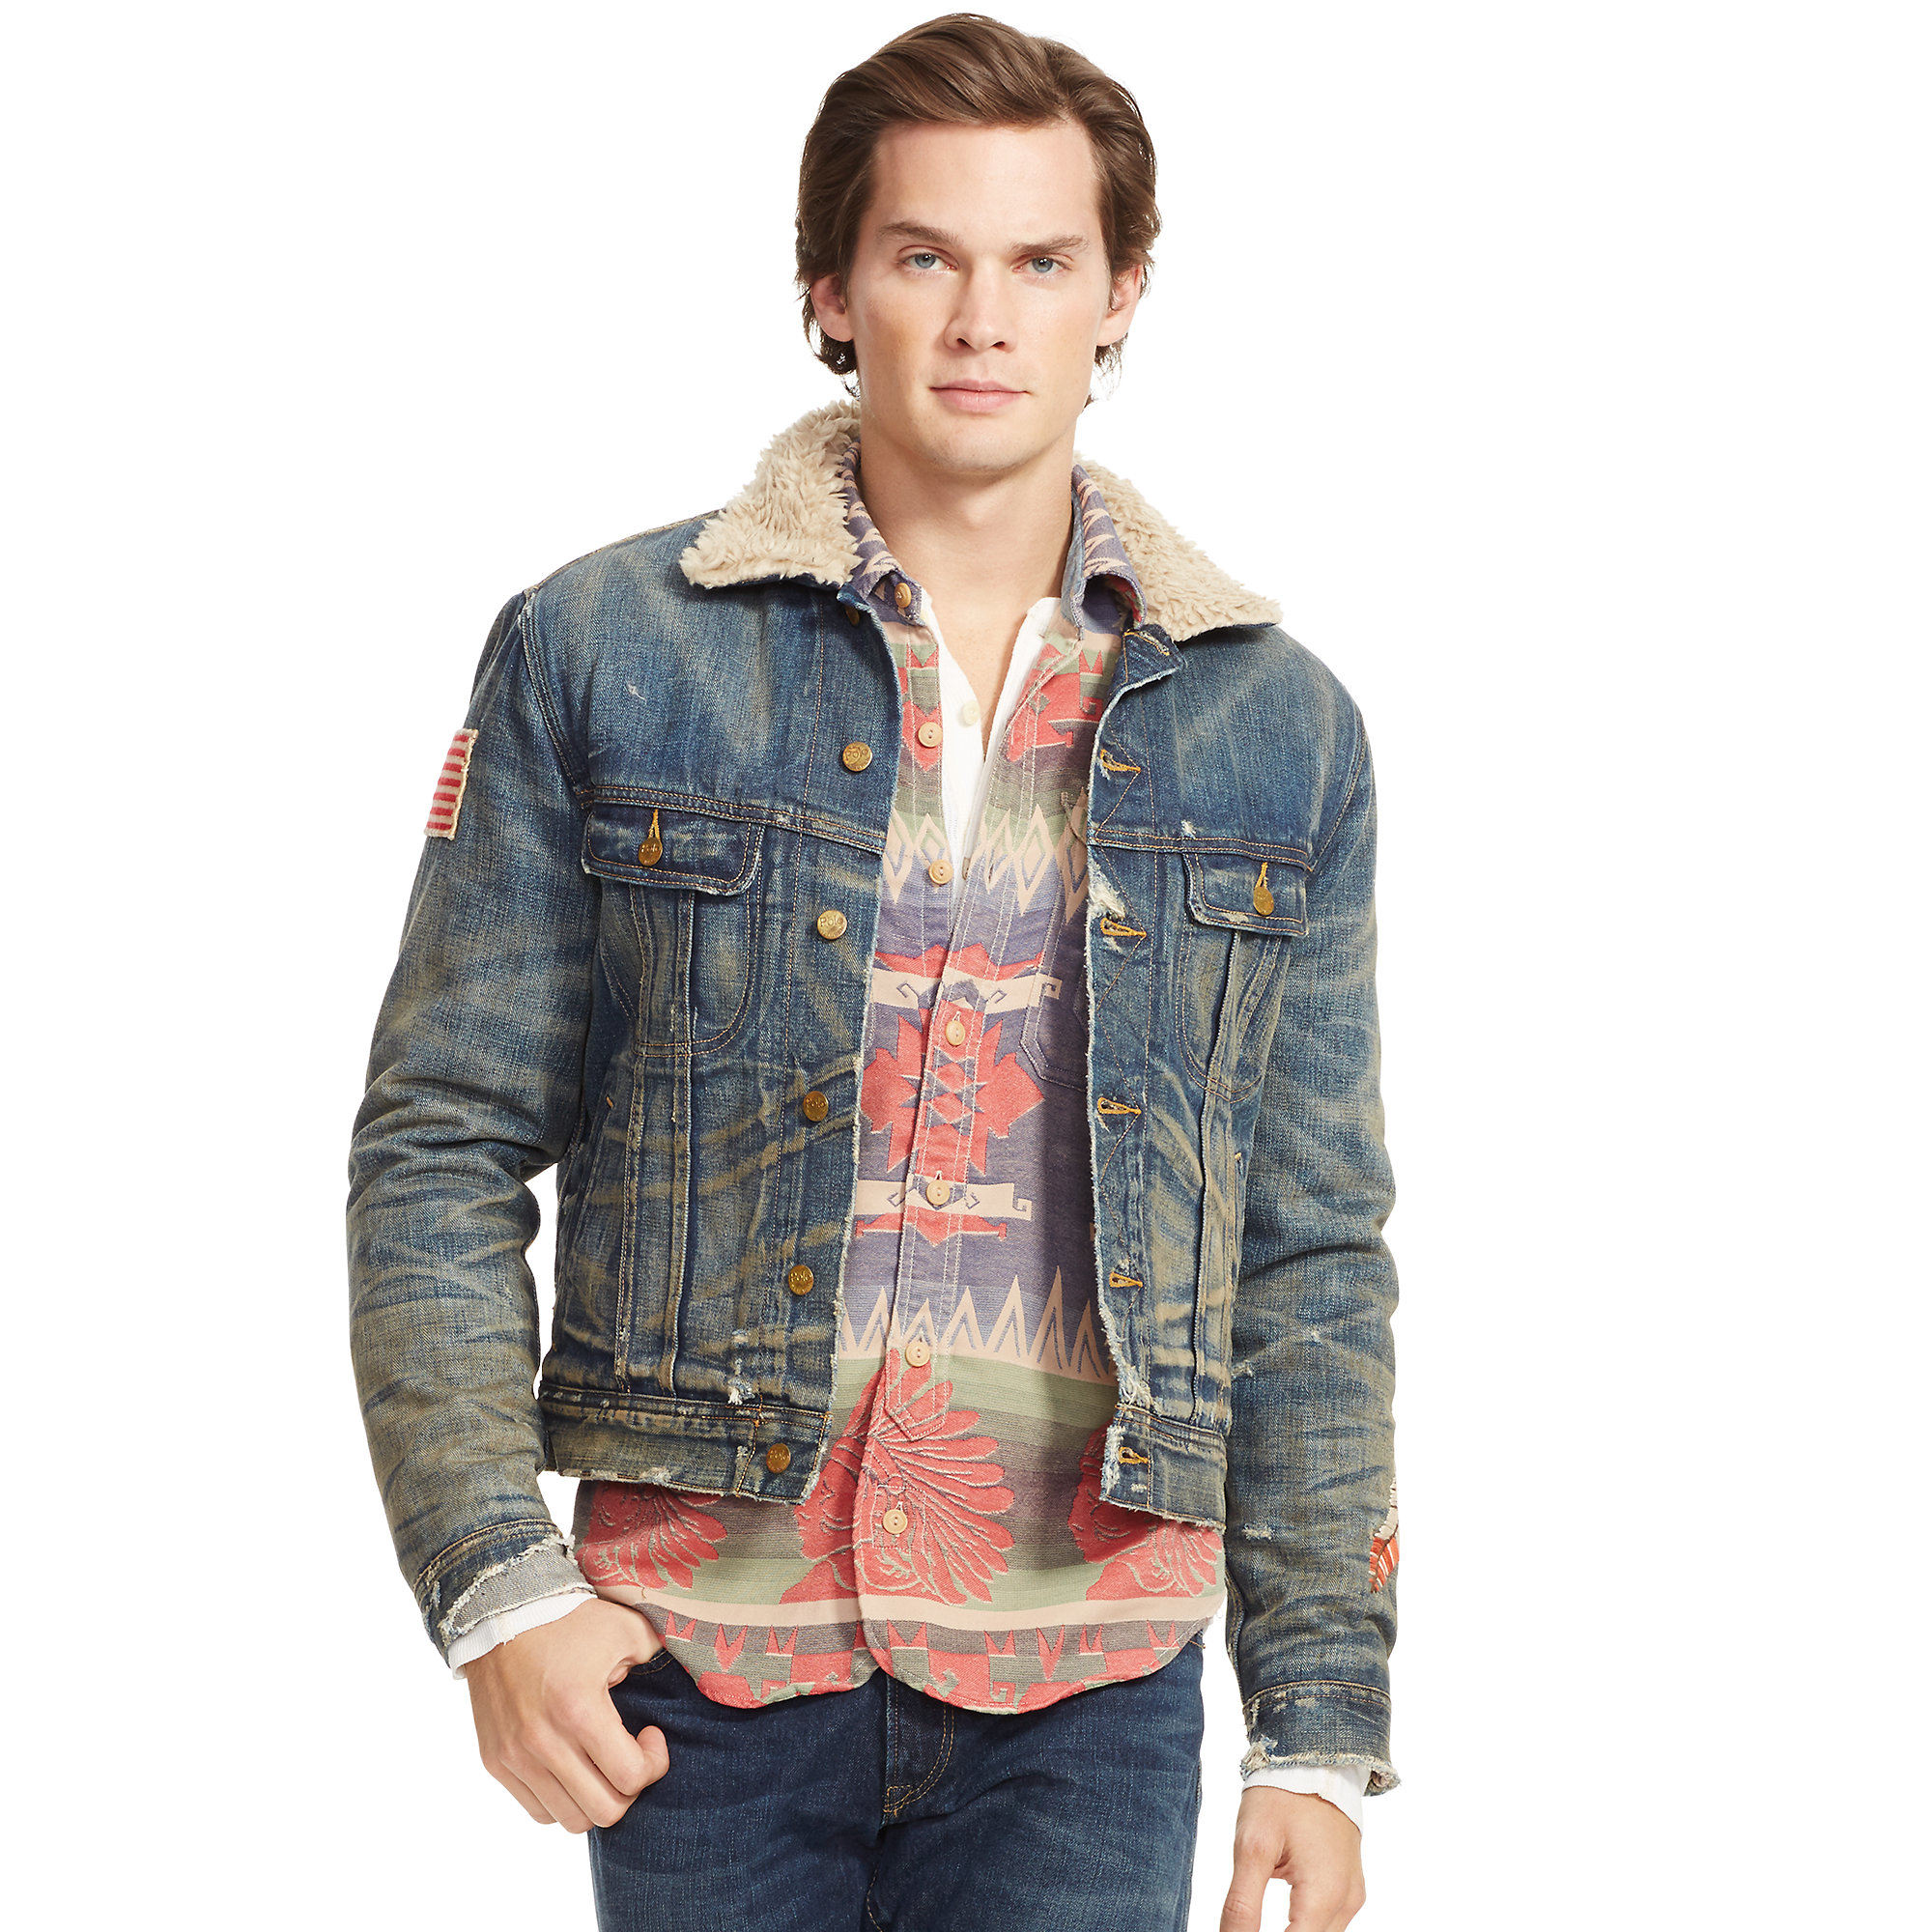 Lyst - Polo Ralph Lauren Faux-shearling Denim Jacket in Blue for Men